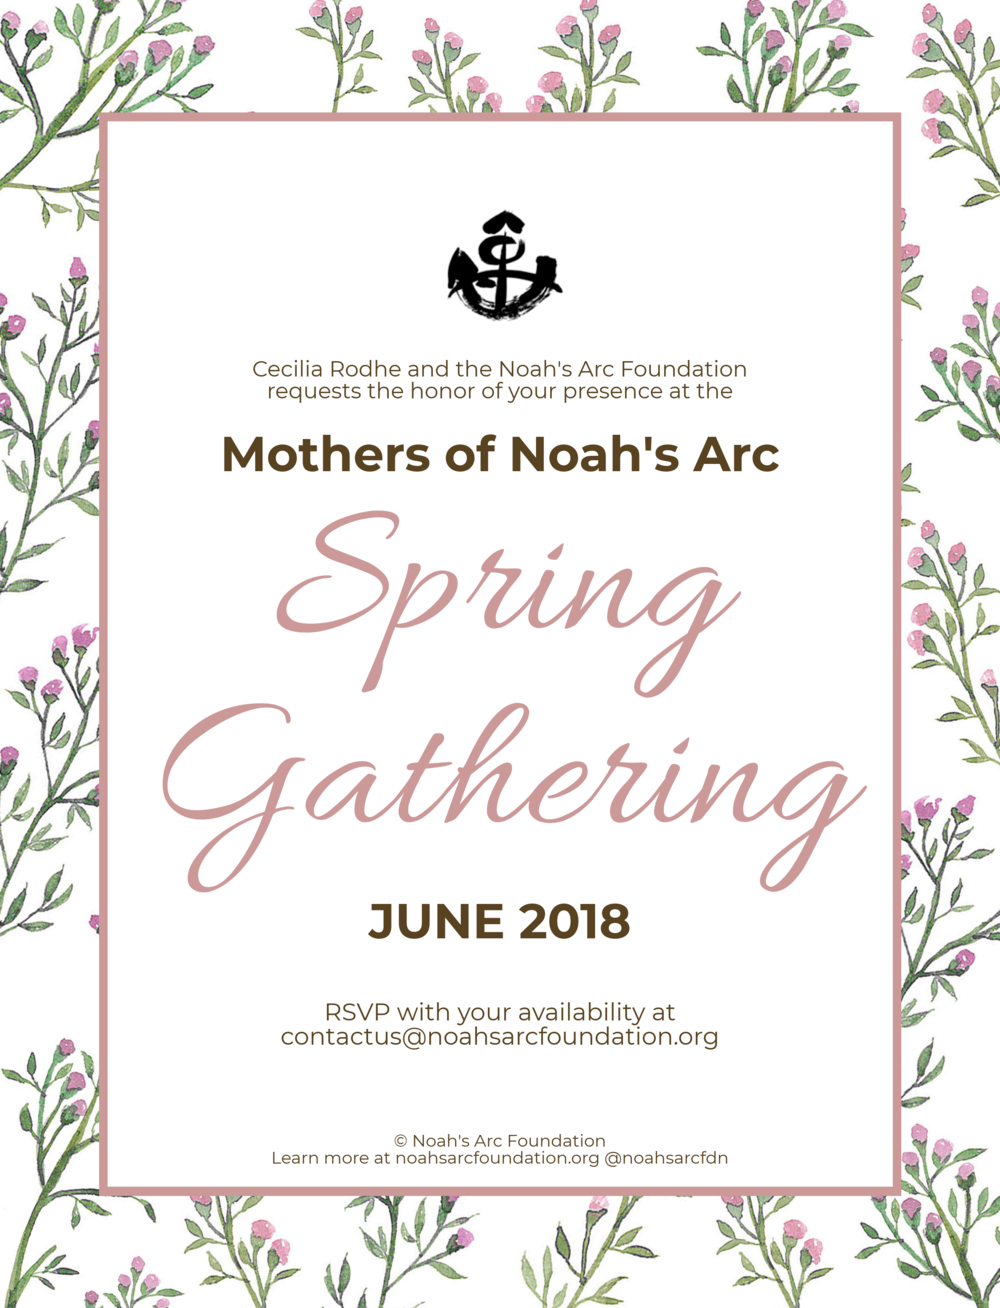 Mothers of Noah's Arc Spring Gathering Invitation